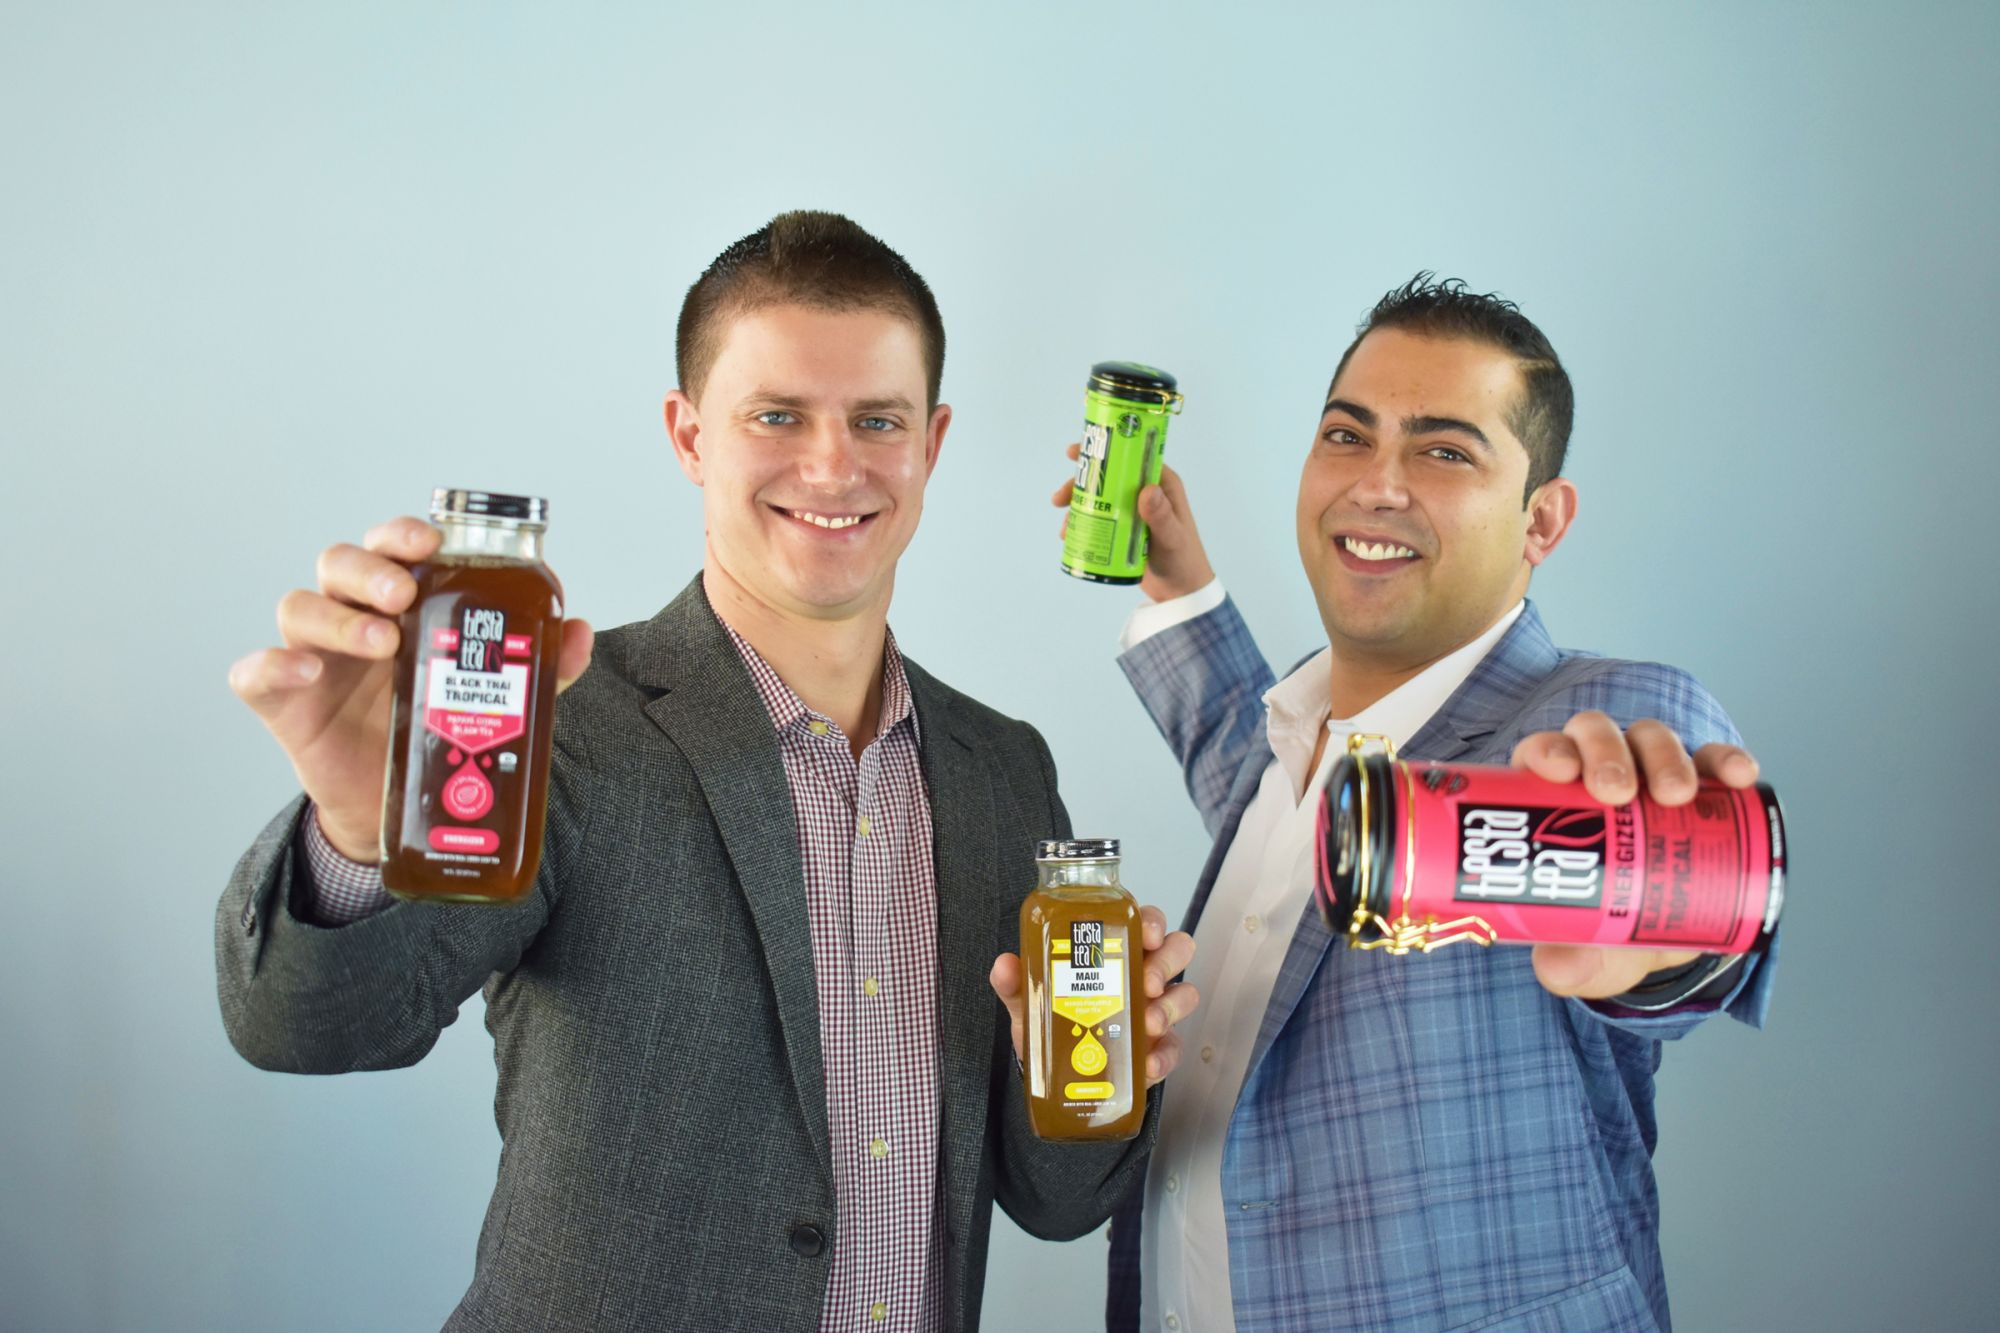 This Nearly $8 Million Tea Brand Was Built on Its Founders Knocking on 500 Doors